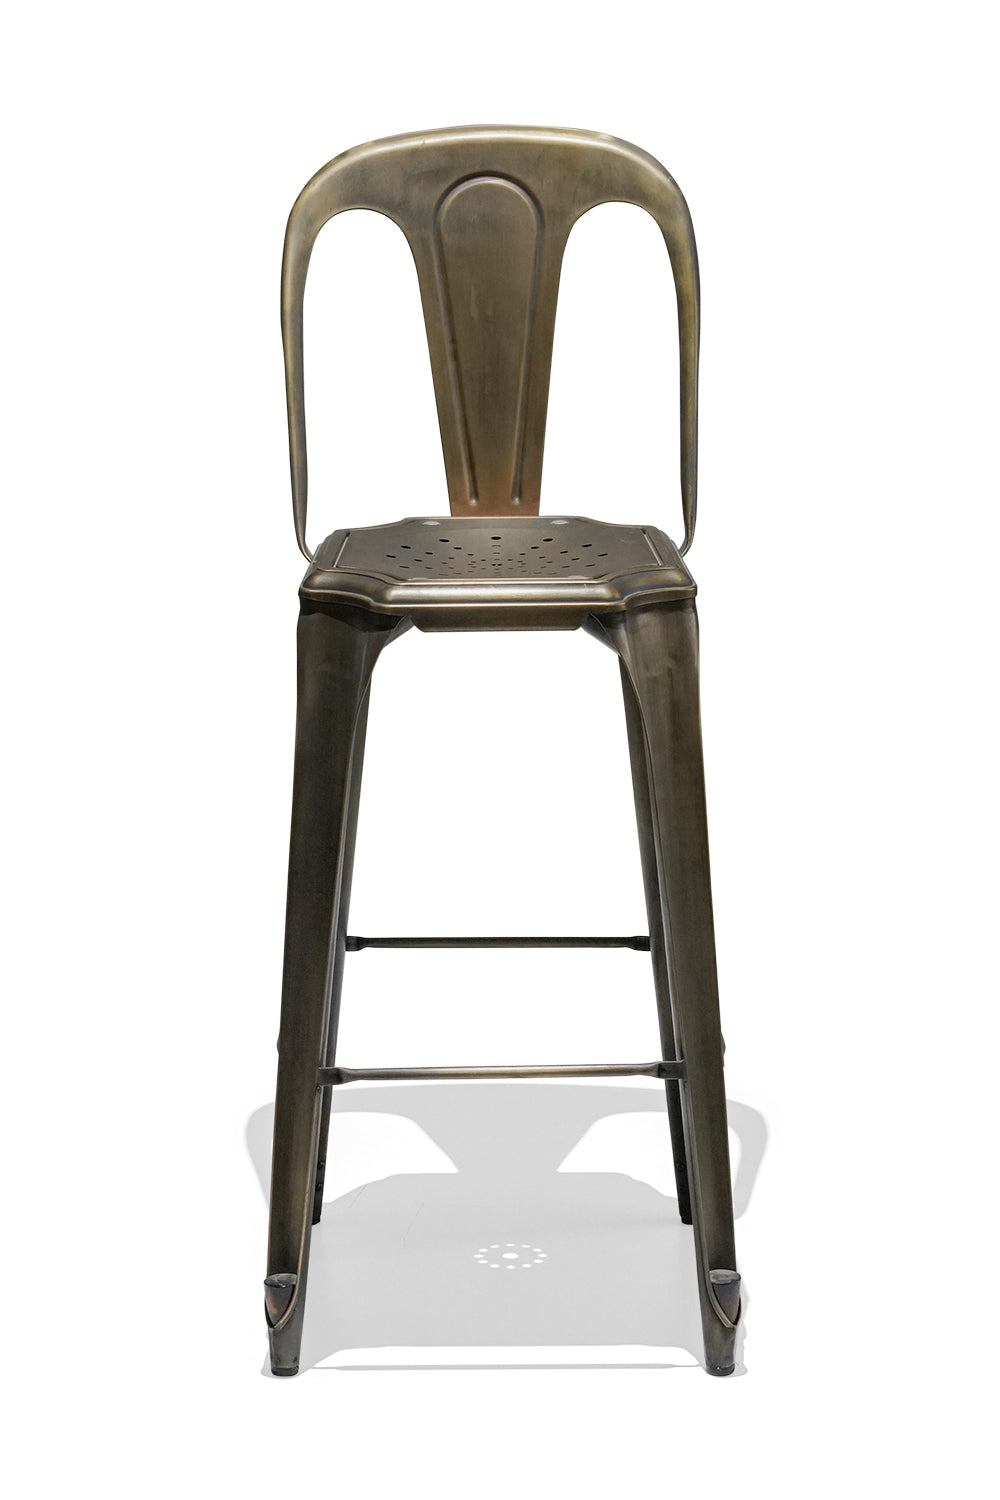 MILTON bar stool